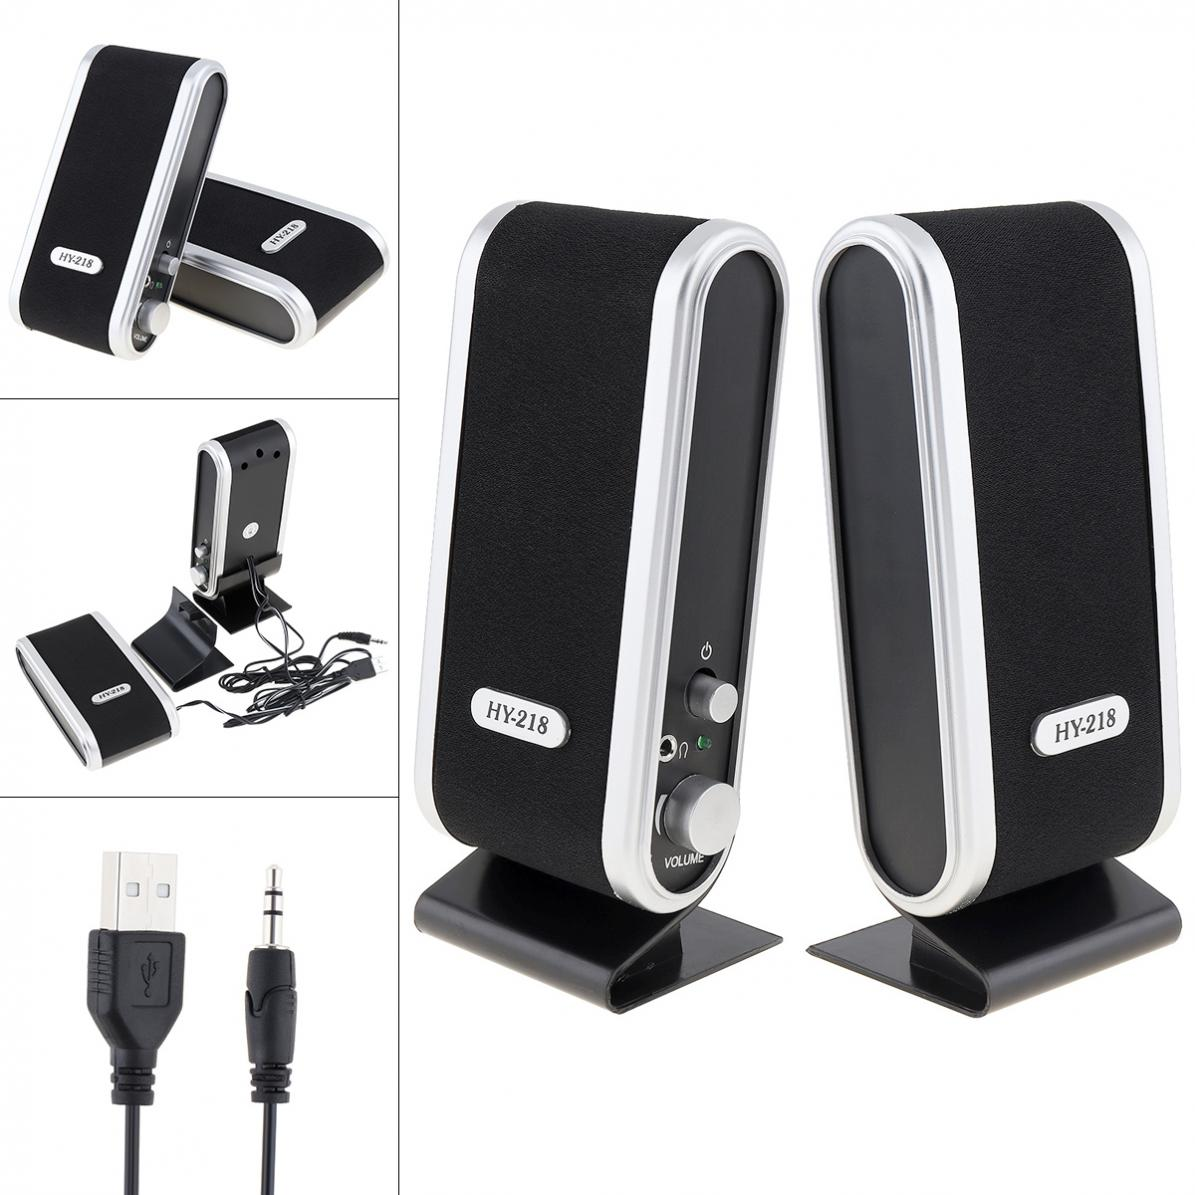 Black HY-218 6W USB2.0 Wired USB Power Speakers Stereo 3.5mm Audio Jack For PC Laptop Computer MAC